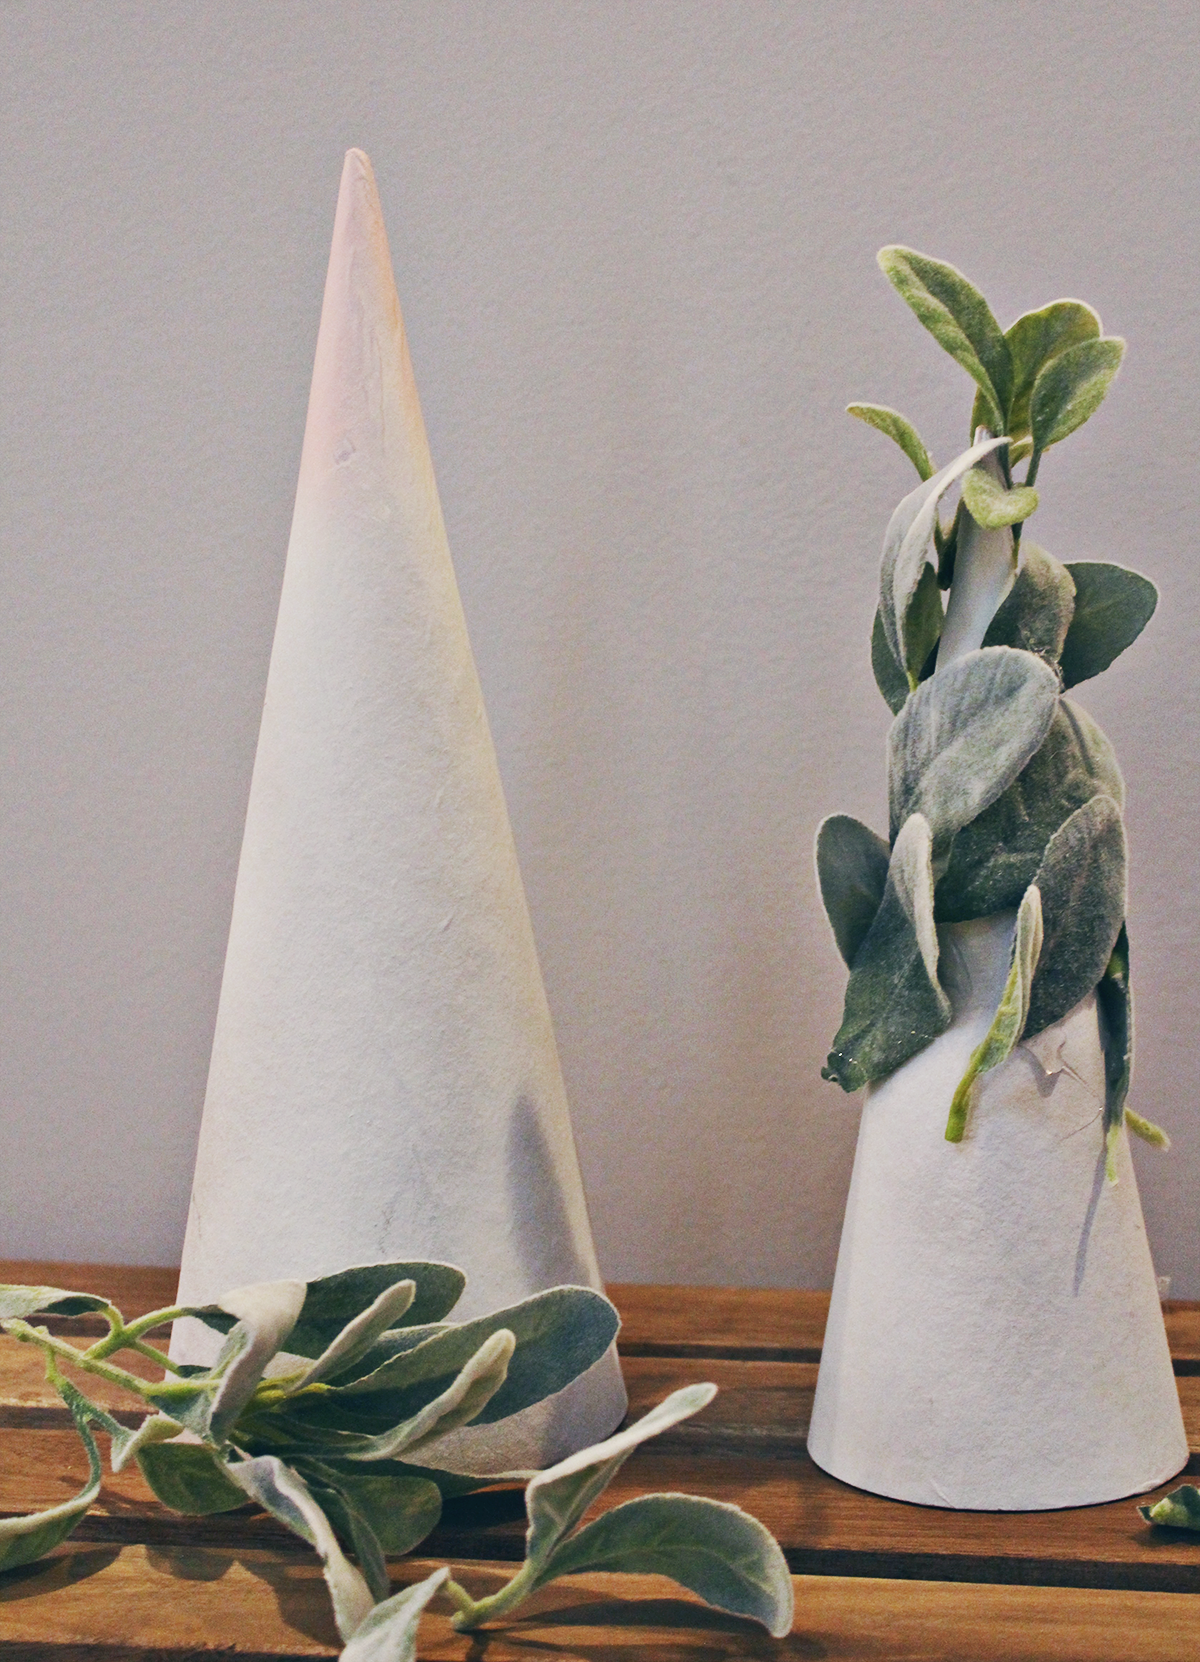 DIY Lamb's Ear Holiday Trees | Easy Holiday Decorating Idea